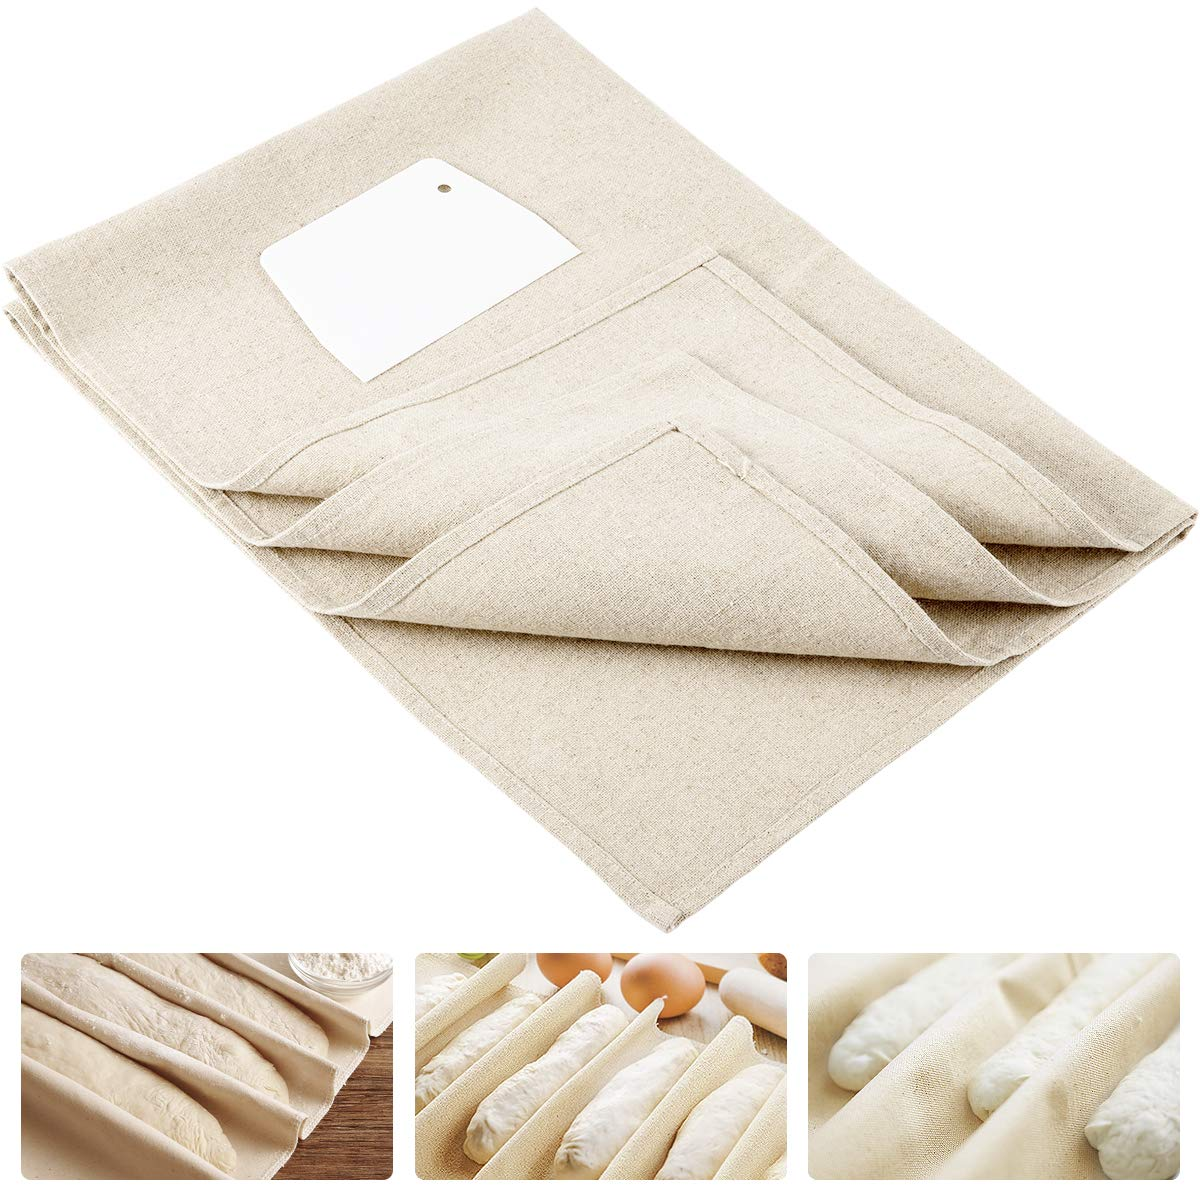 ANPHSIN Large Professional Bakers Dough Couche (35'' × 26'')- 100% Natural Flax Heavy Duty Linen Pastry Proofing Cloth for Baking French Bread Baguettes Loafs